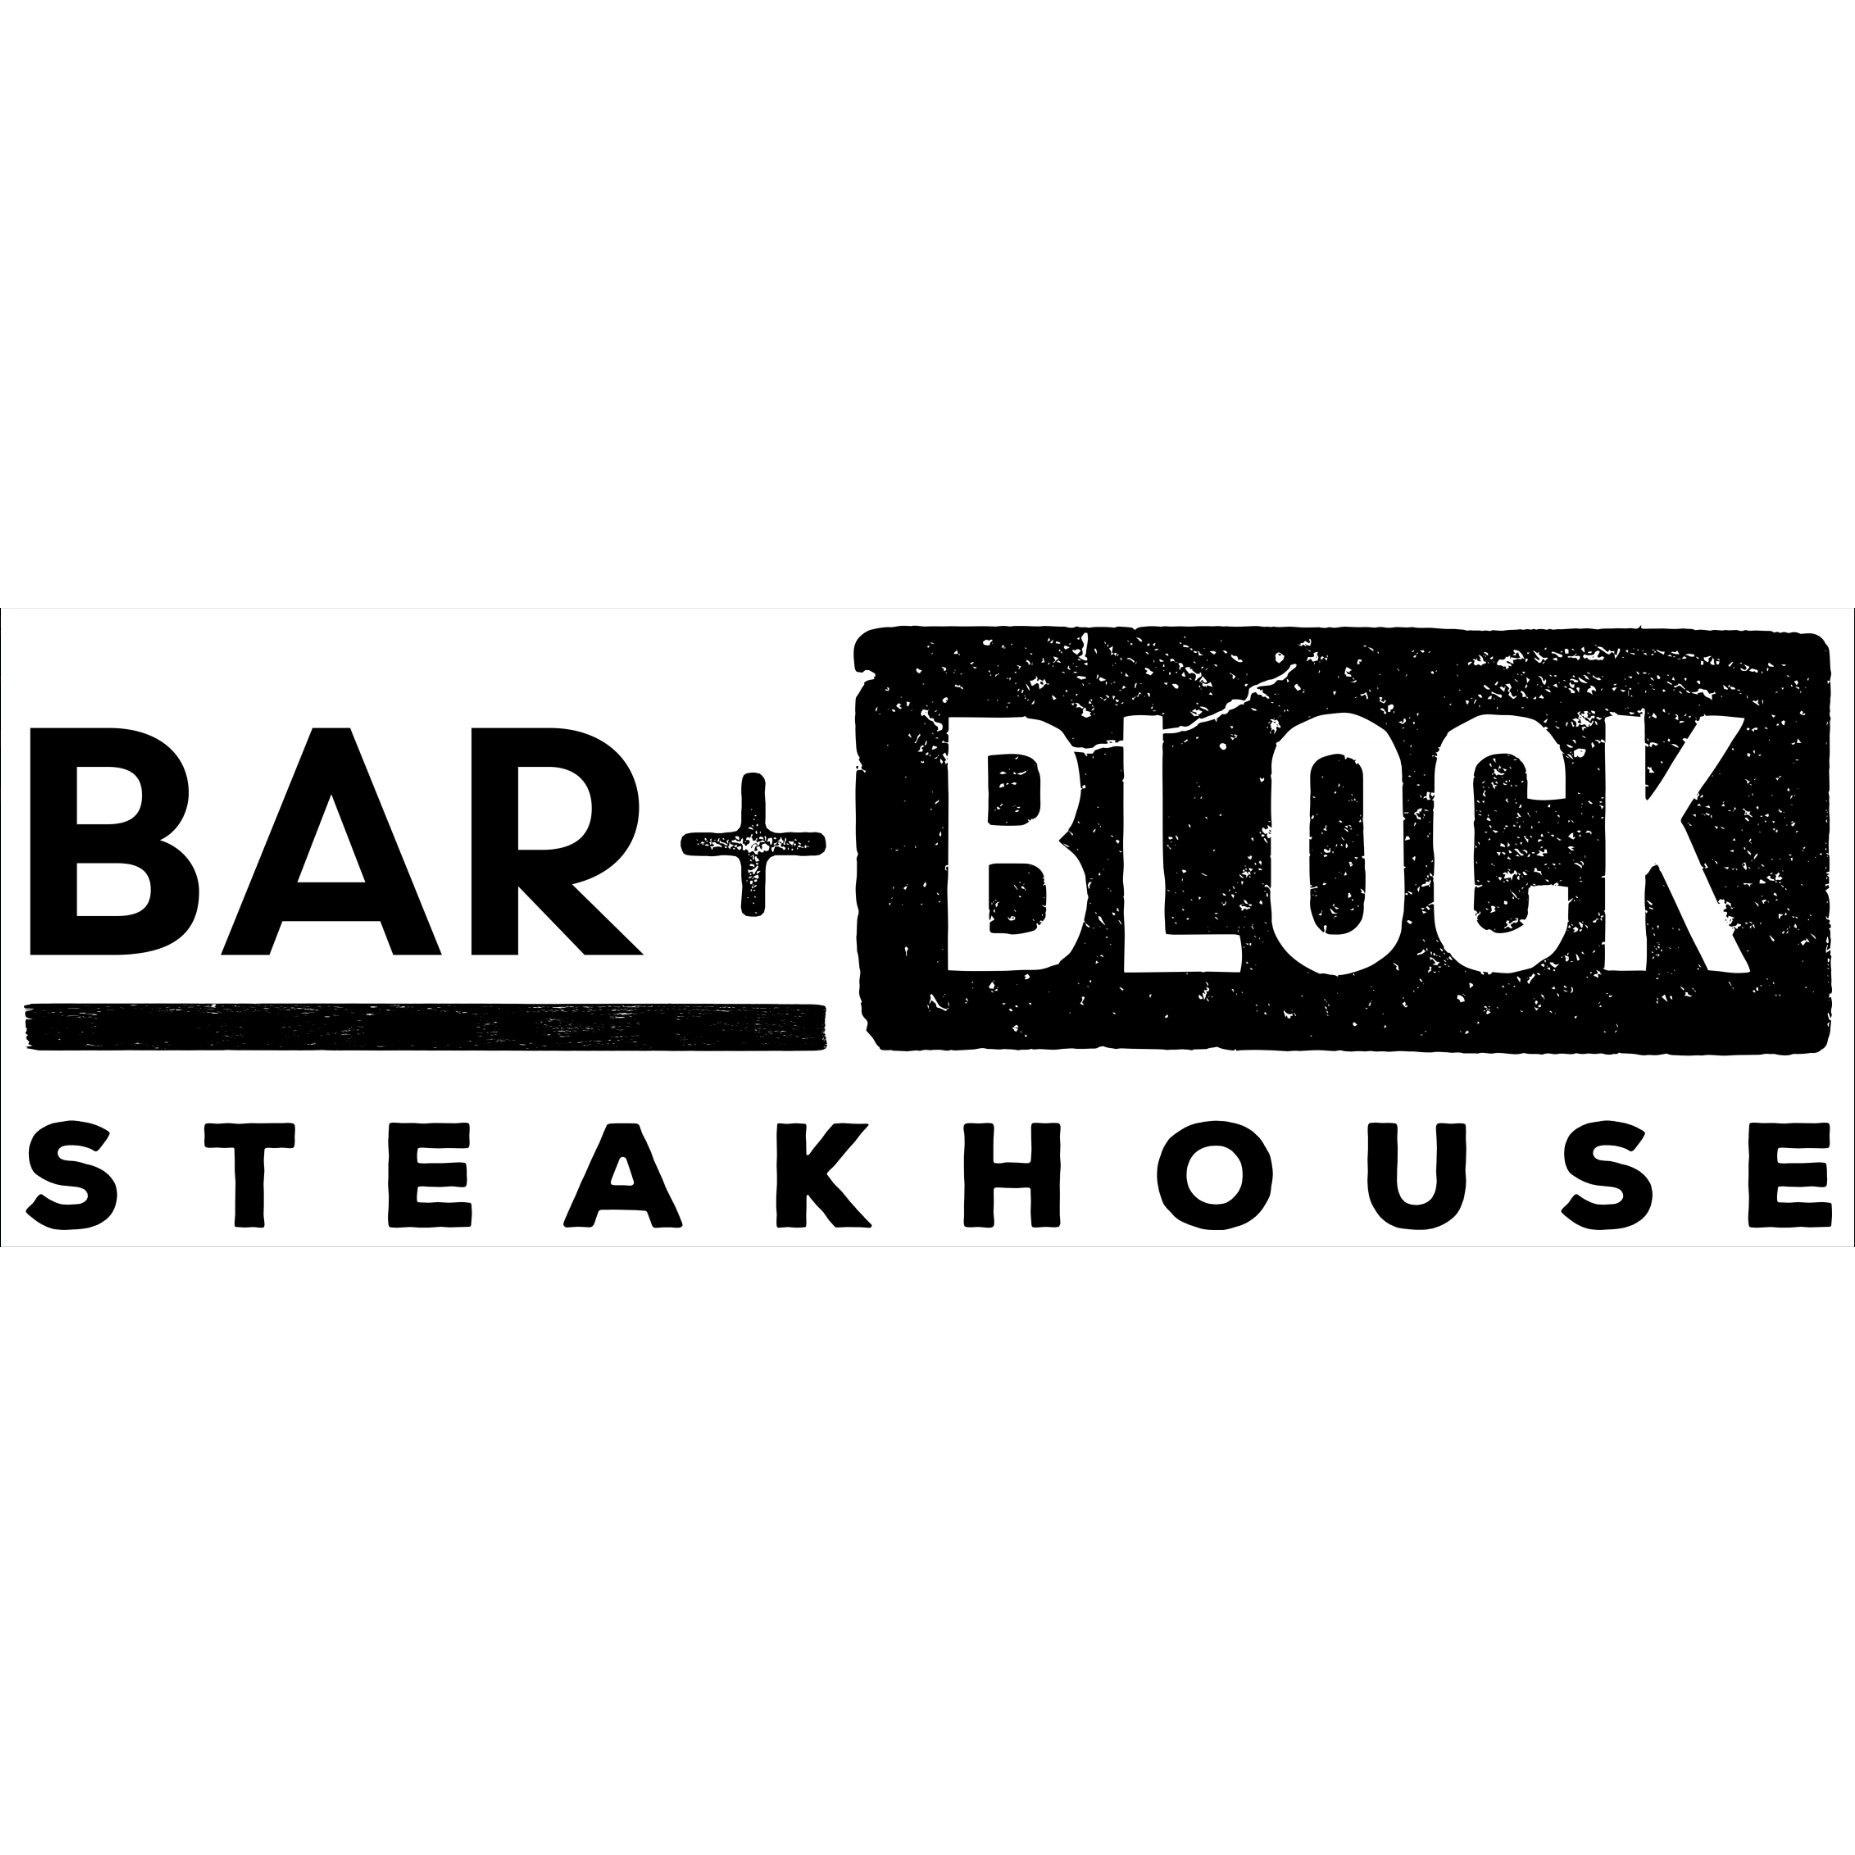 Bar + Block Steakhouse - Nottingham, Nottinghamshire NG1 6JA - 01156 973973 | ShowMeLocal.com